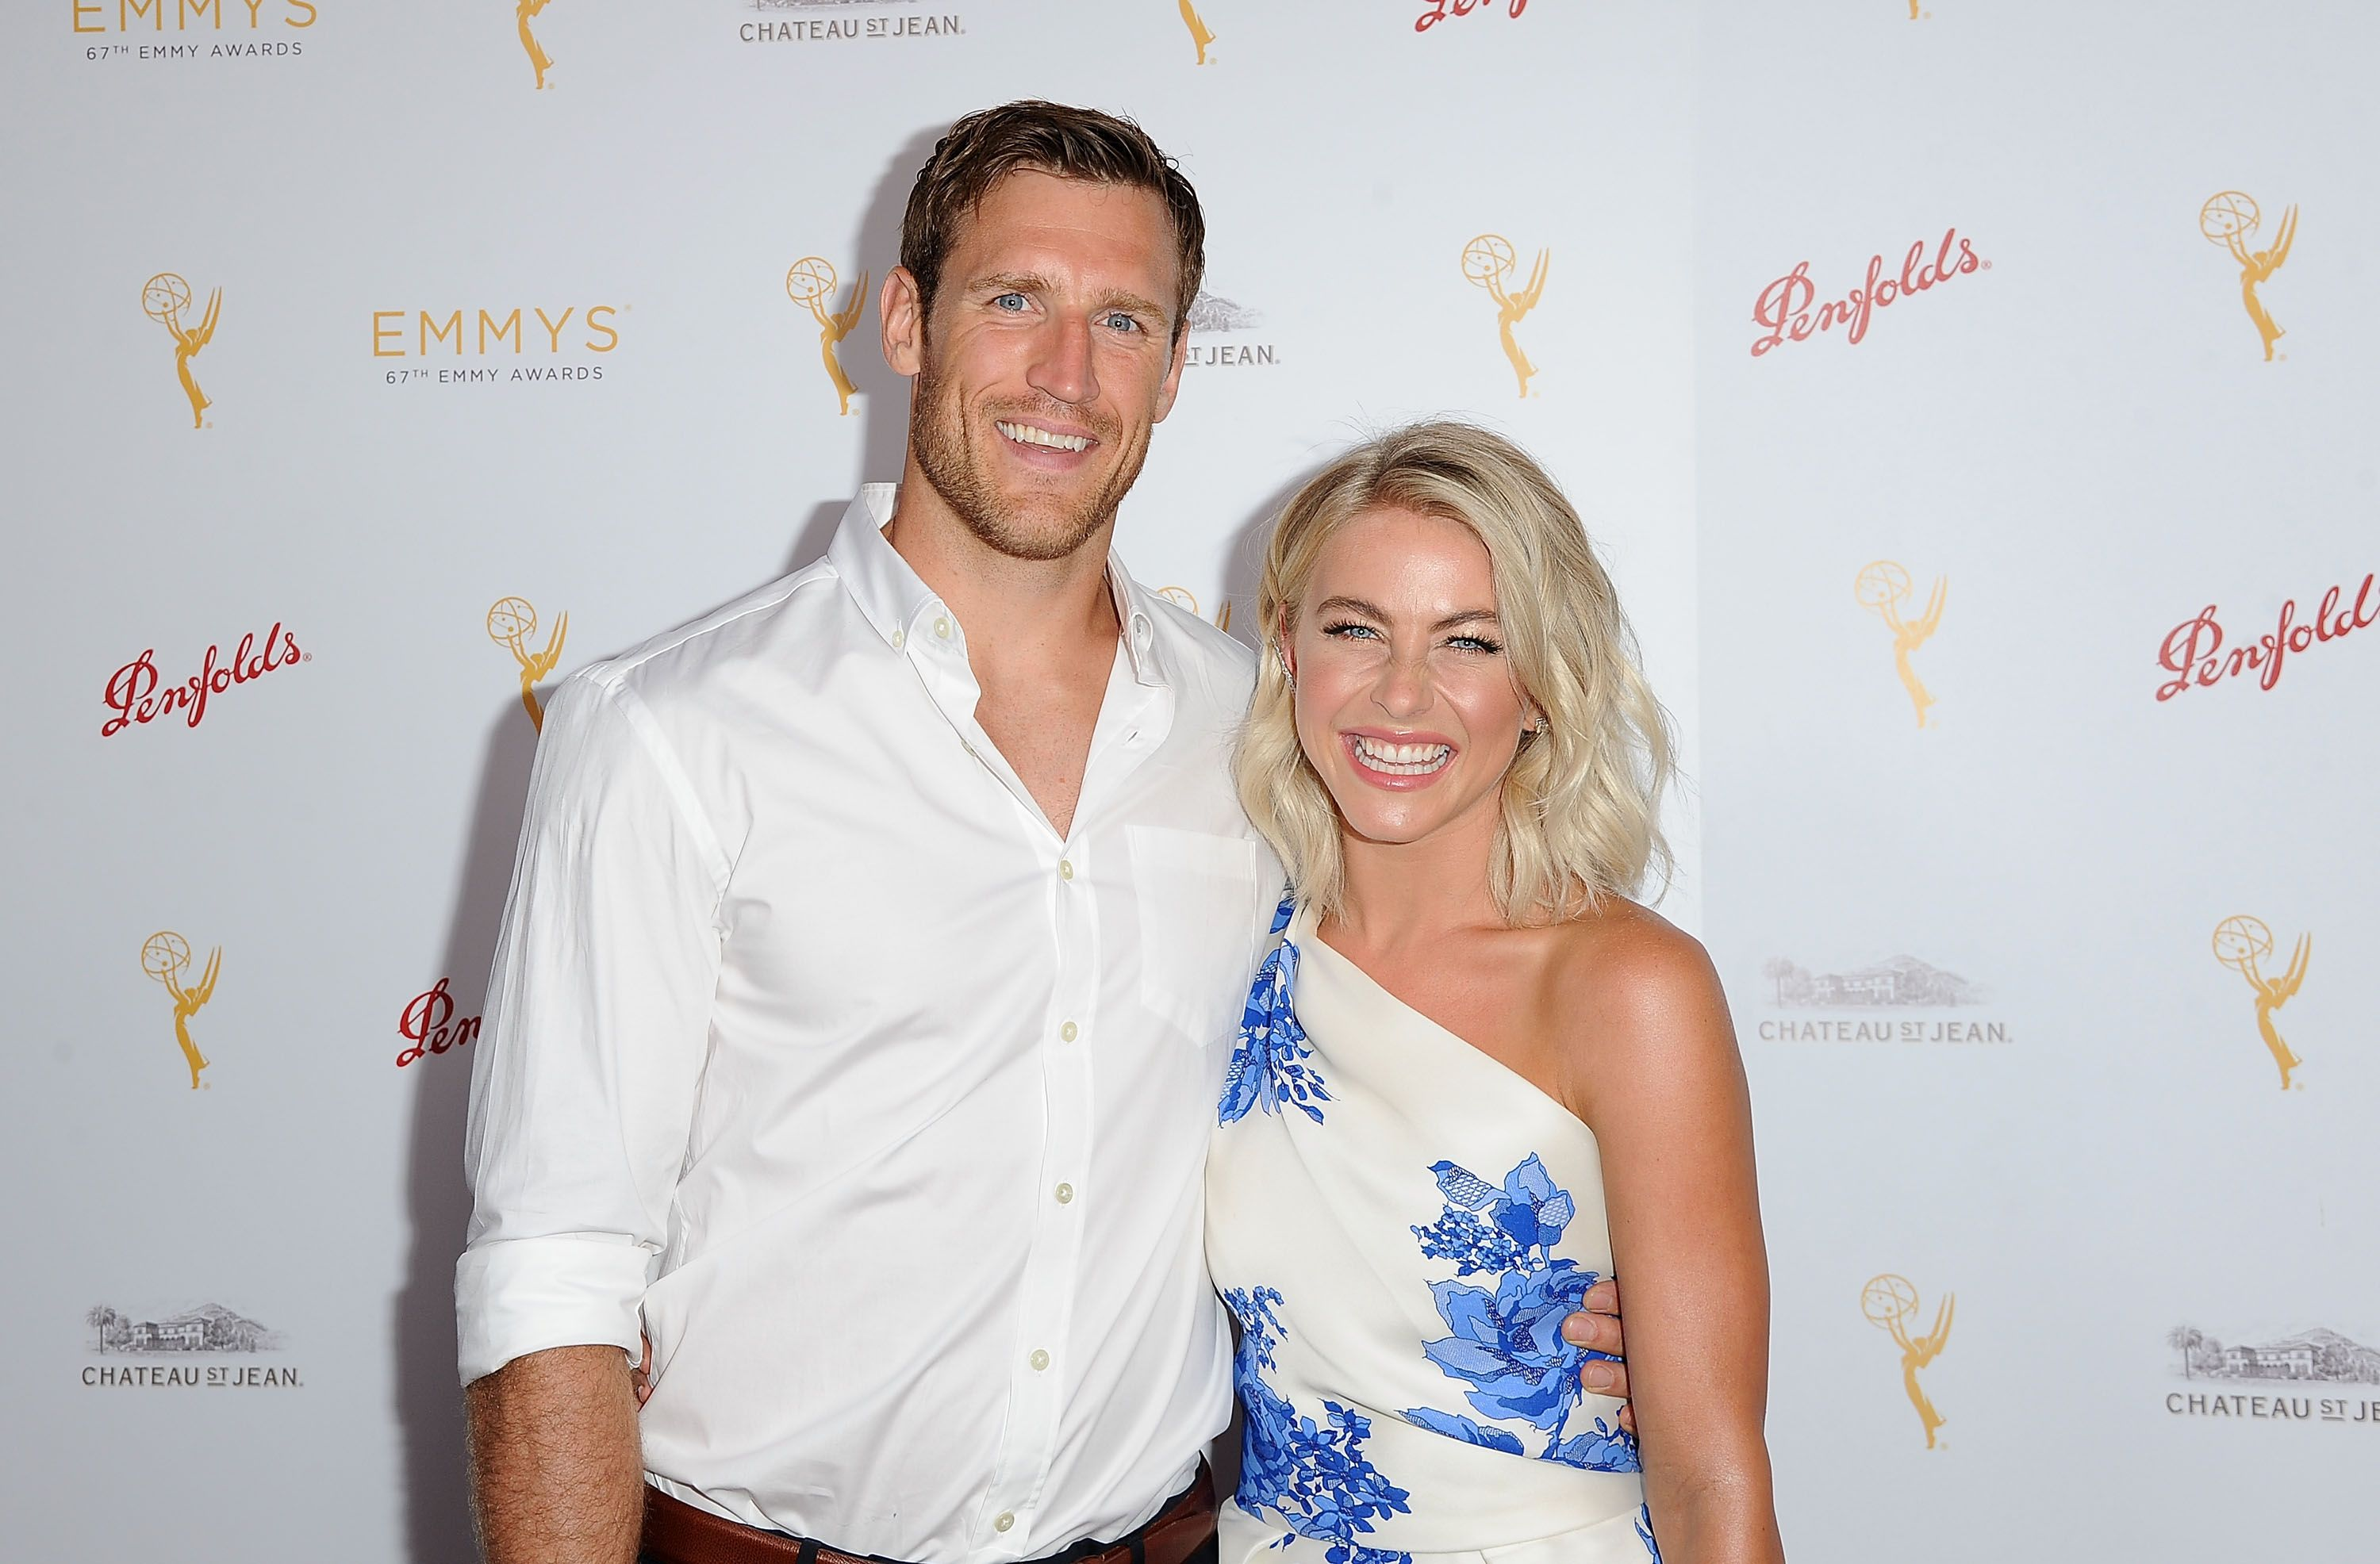 Julianne Hough And Brooks Laich Reportedly Having Problems